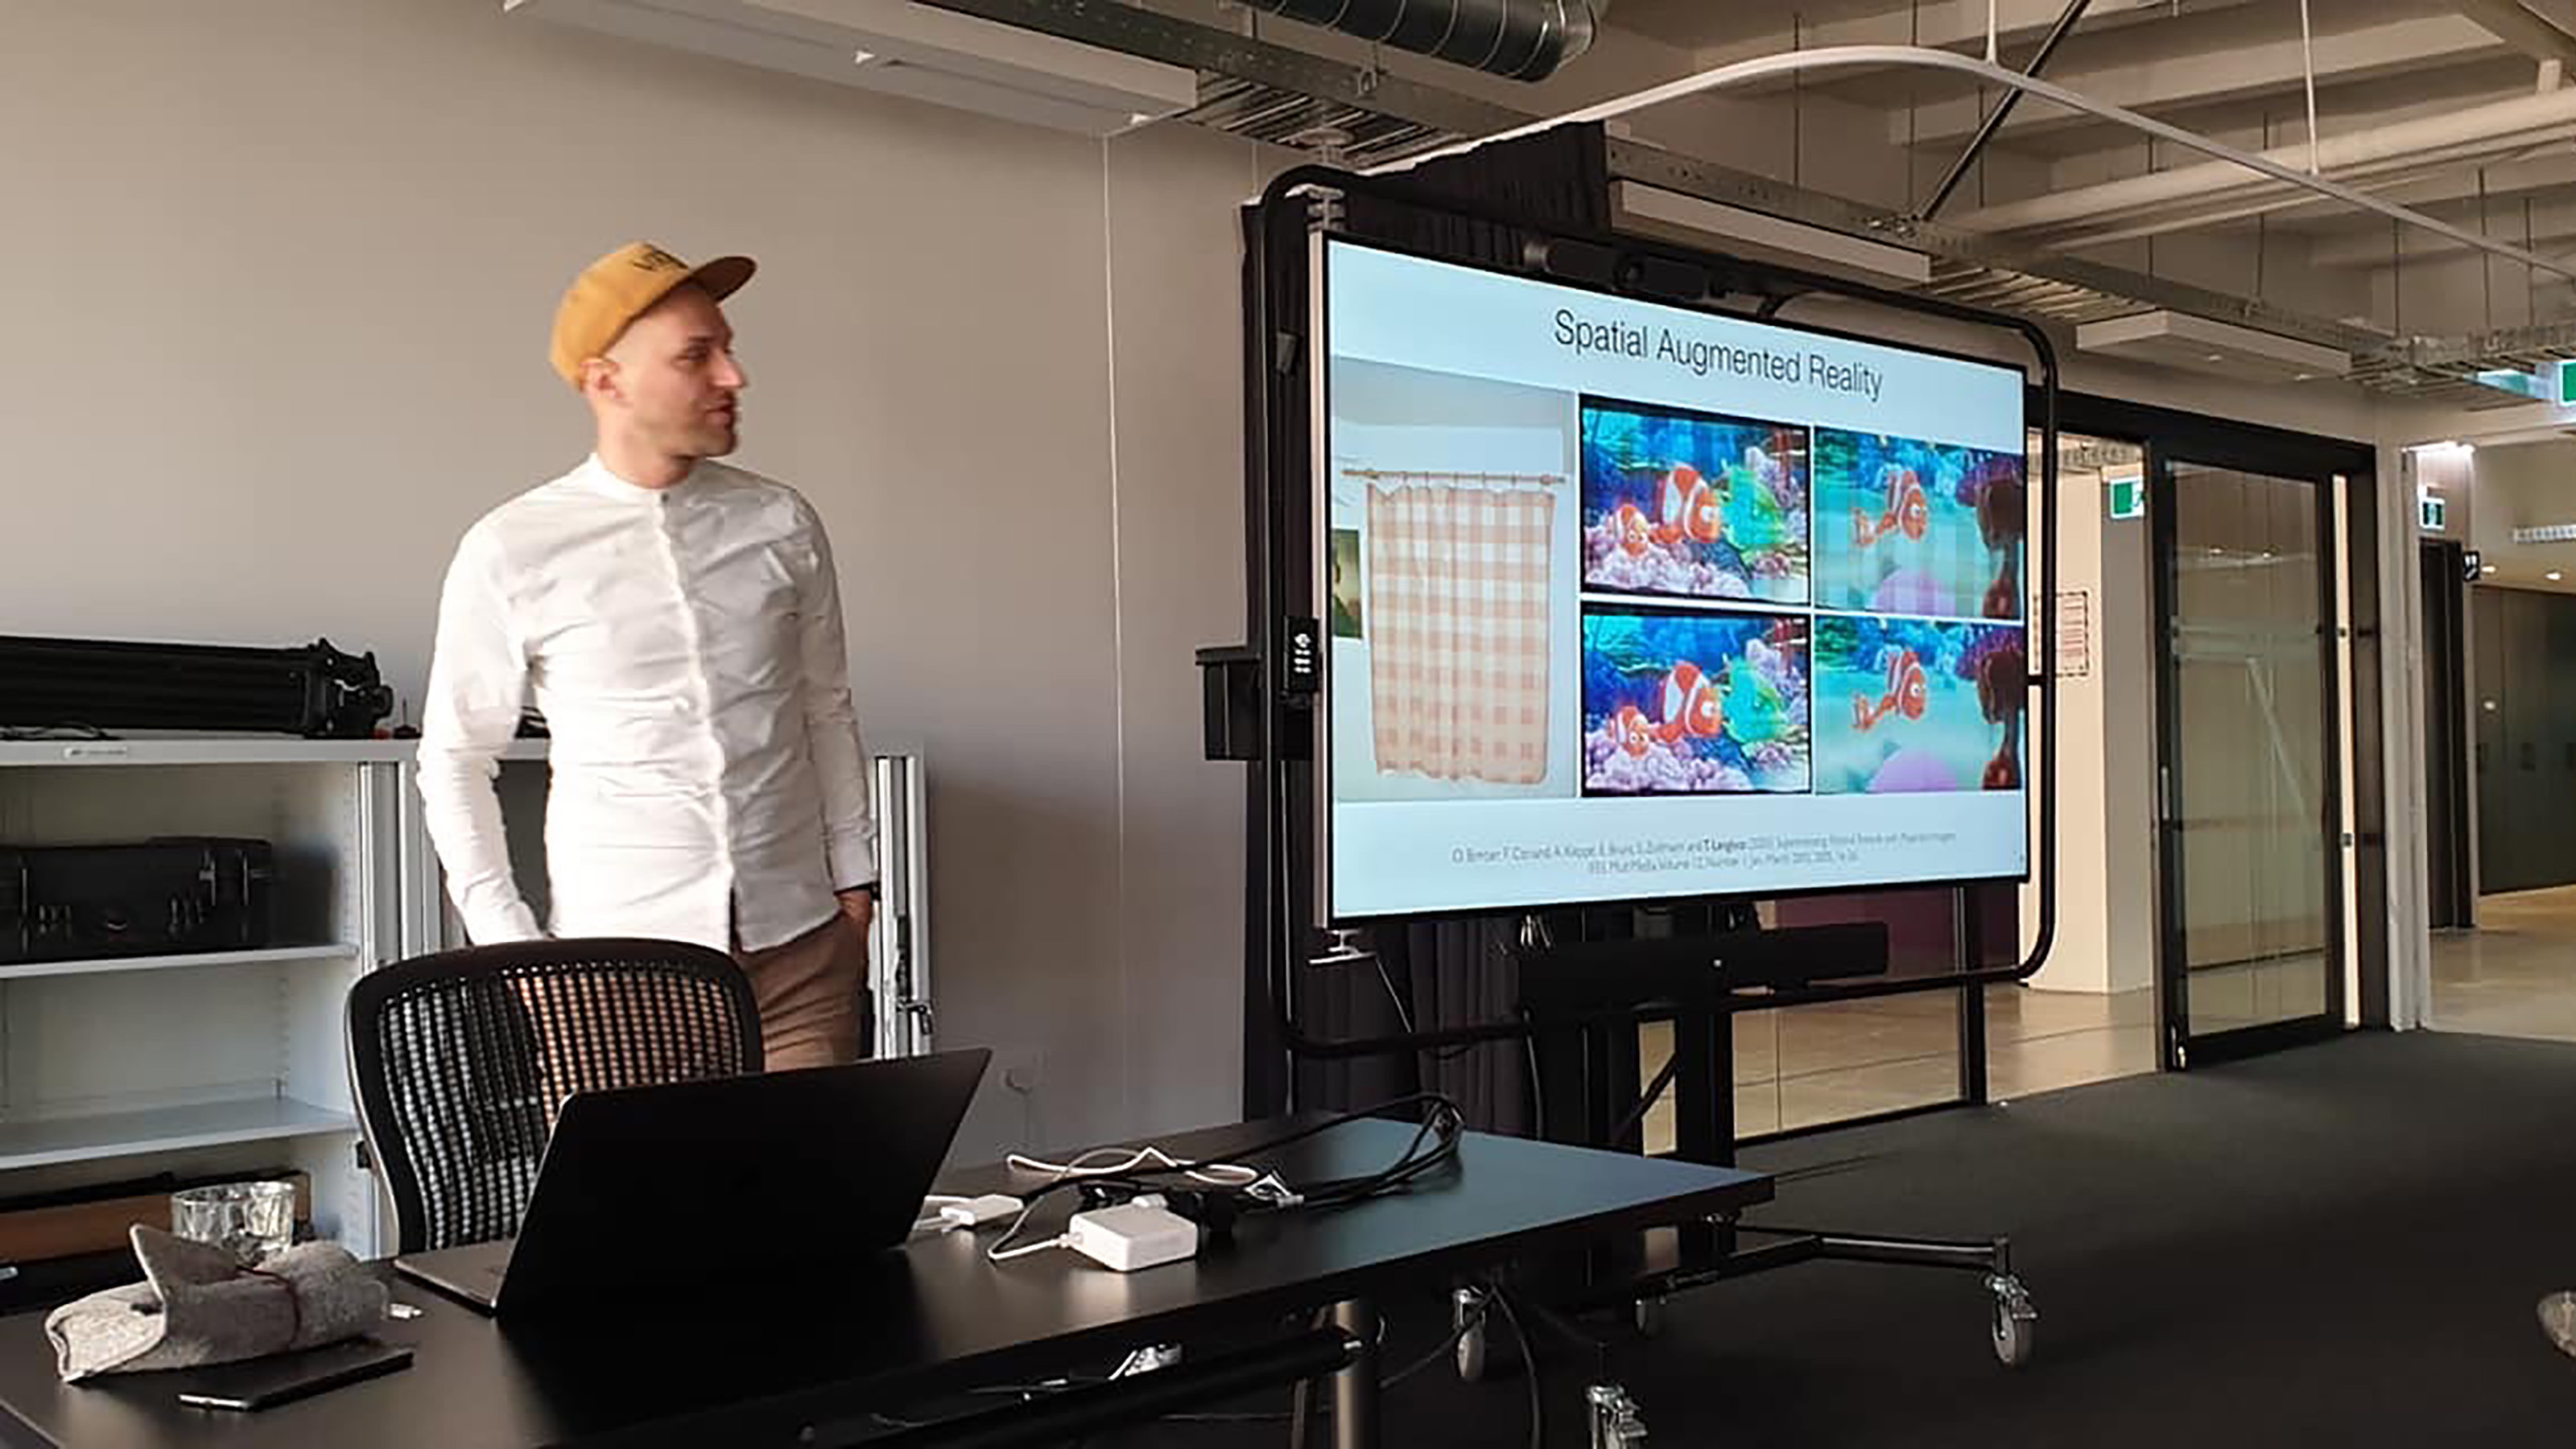 Associate Professor Tobias Langlotz of the University of Otago presents his journey in the field of Augmented Reality.